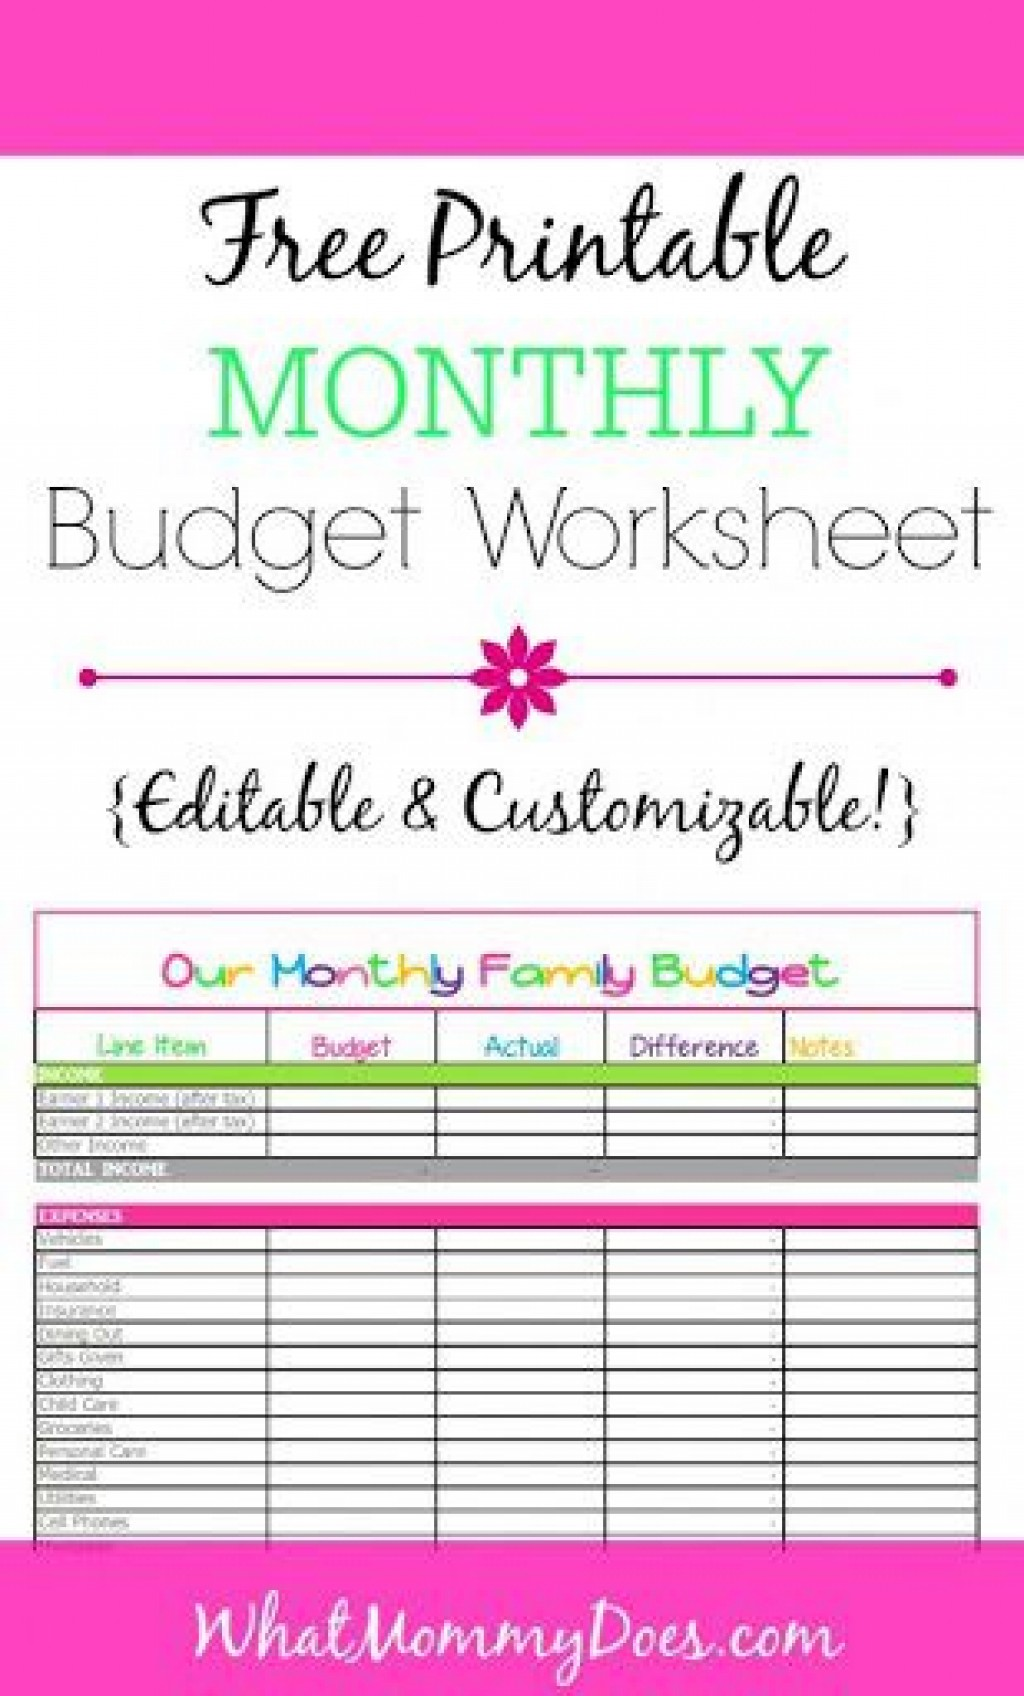 000 Exceptional Free Monthly Budget Worksheet Printable High Def  Template Family BlankLarge